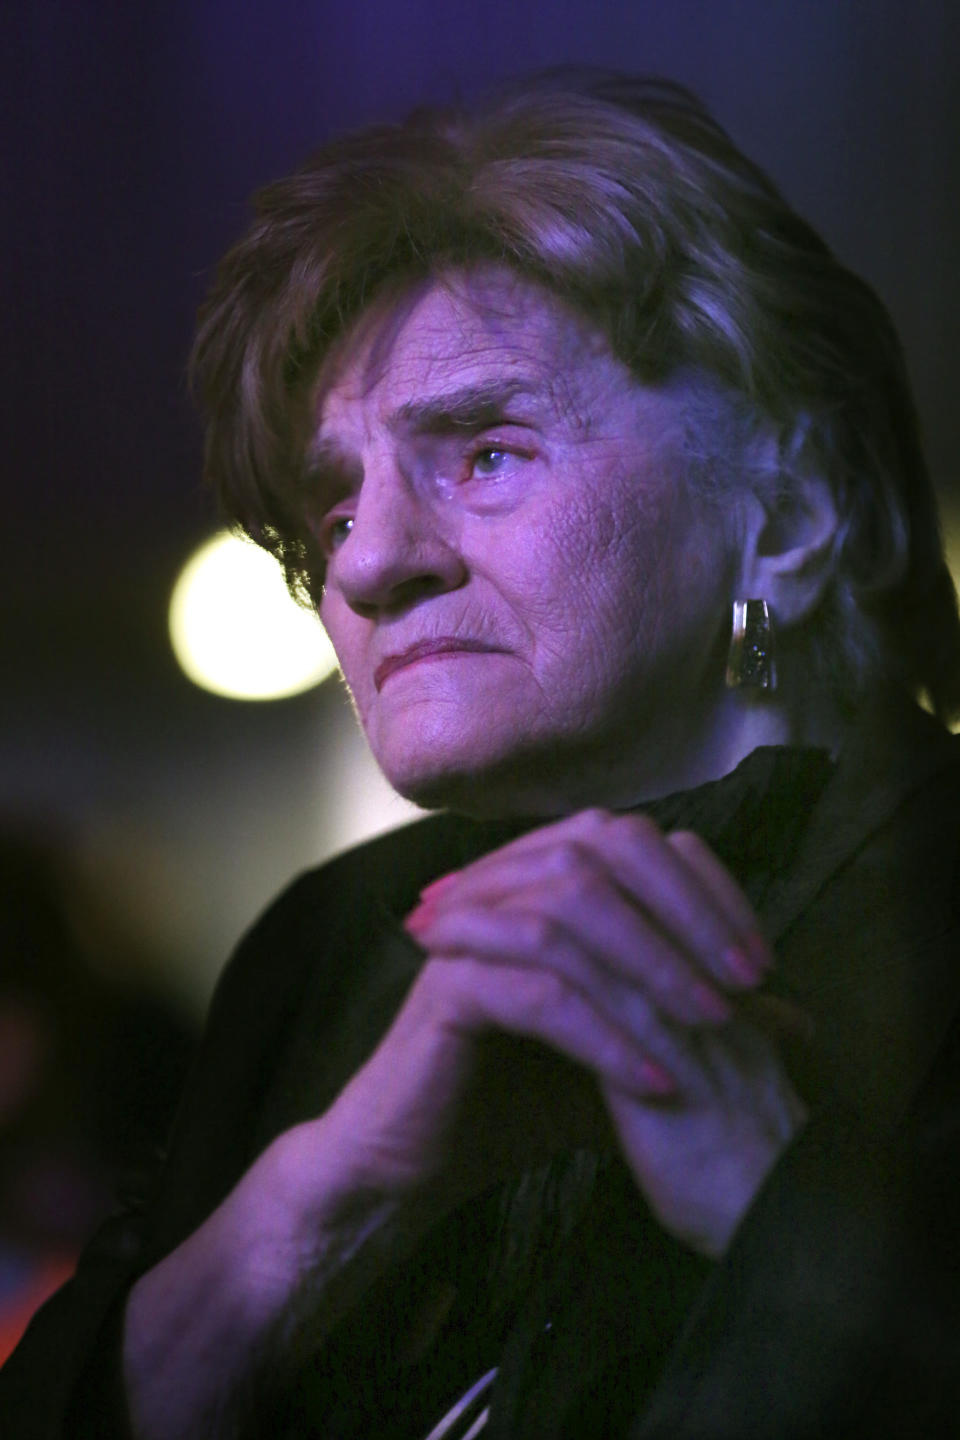 Charlotte Cukier, 90, watches Orthodox Jewish singer Yaakov Shwekey perform at a concert honoring her and dozens of other Holocaust survivors on Monday, June 14, 2021, at the Yeshivah of Flatbush theater in the Brooklyn borough of New York. It was the first large gathering of Holocaust survivors after more than a year of isolation due to the coronavirus pandemic. (AP Photo/Jessie Wardarski)